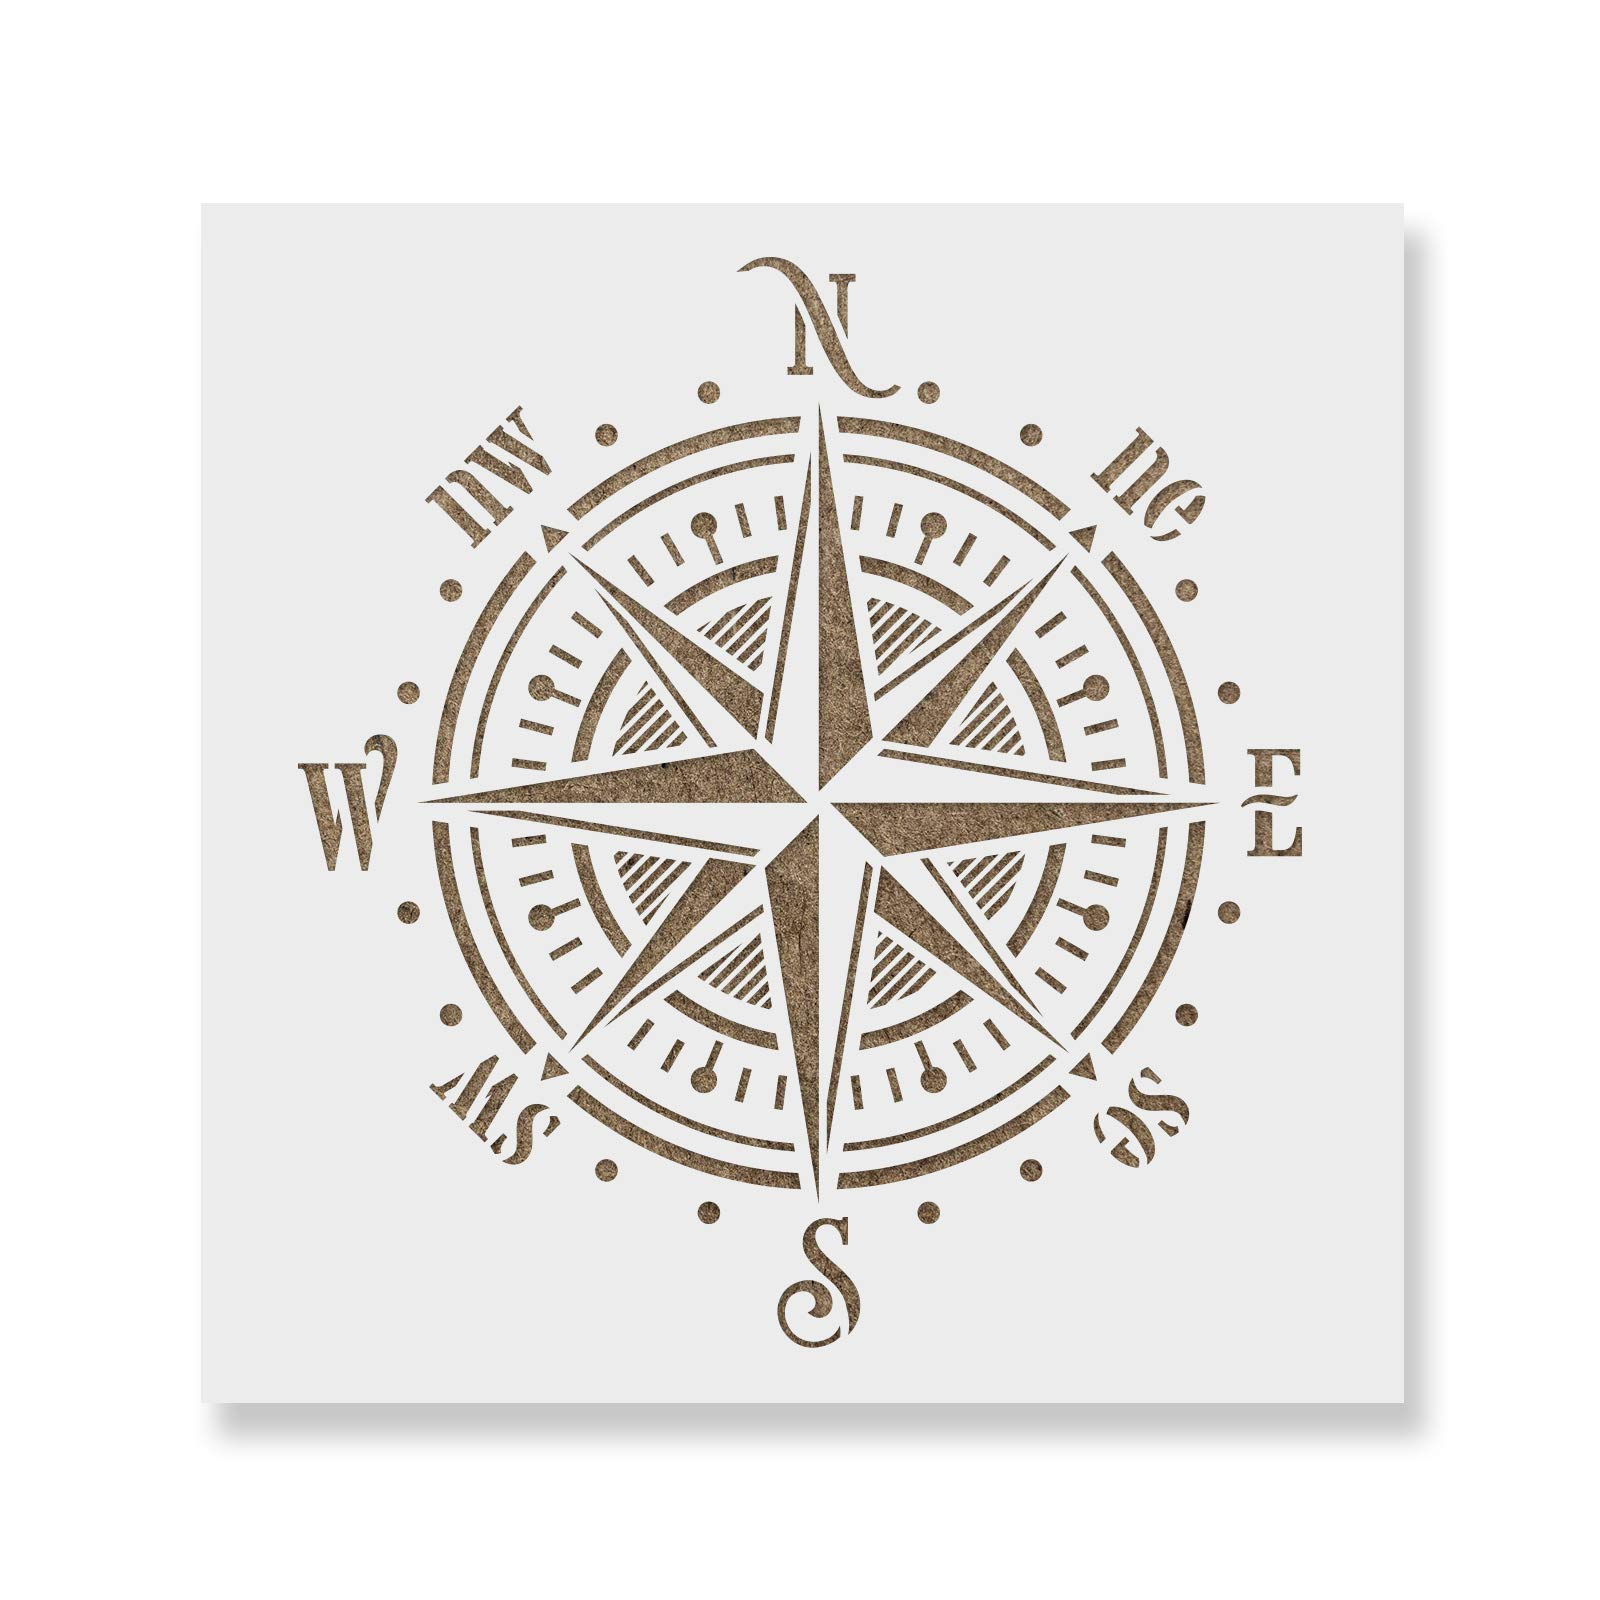 Compass Rose Stencil Template - Reusable Stencil with Multiple Sizes Available